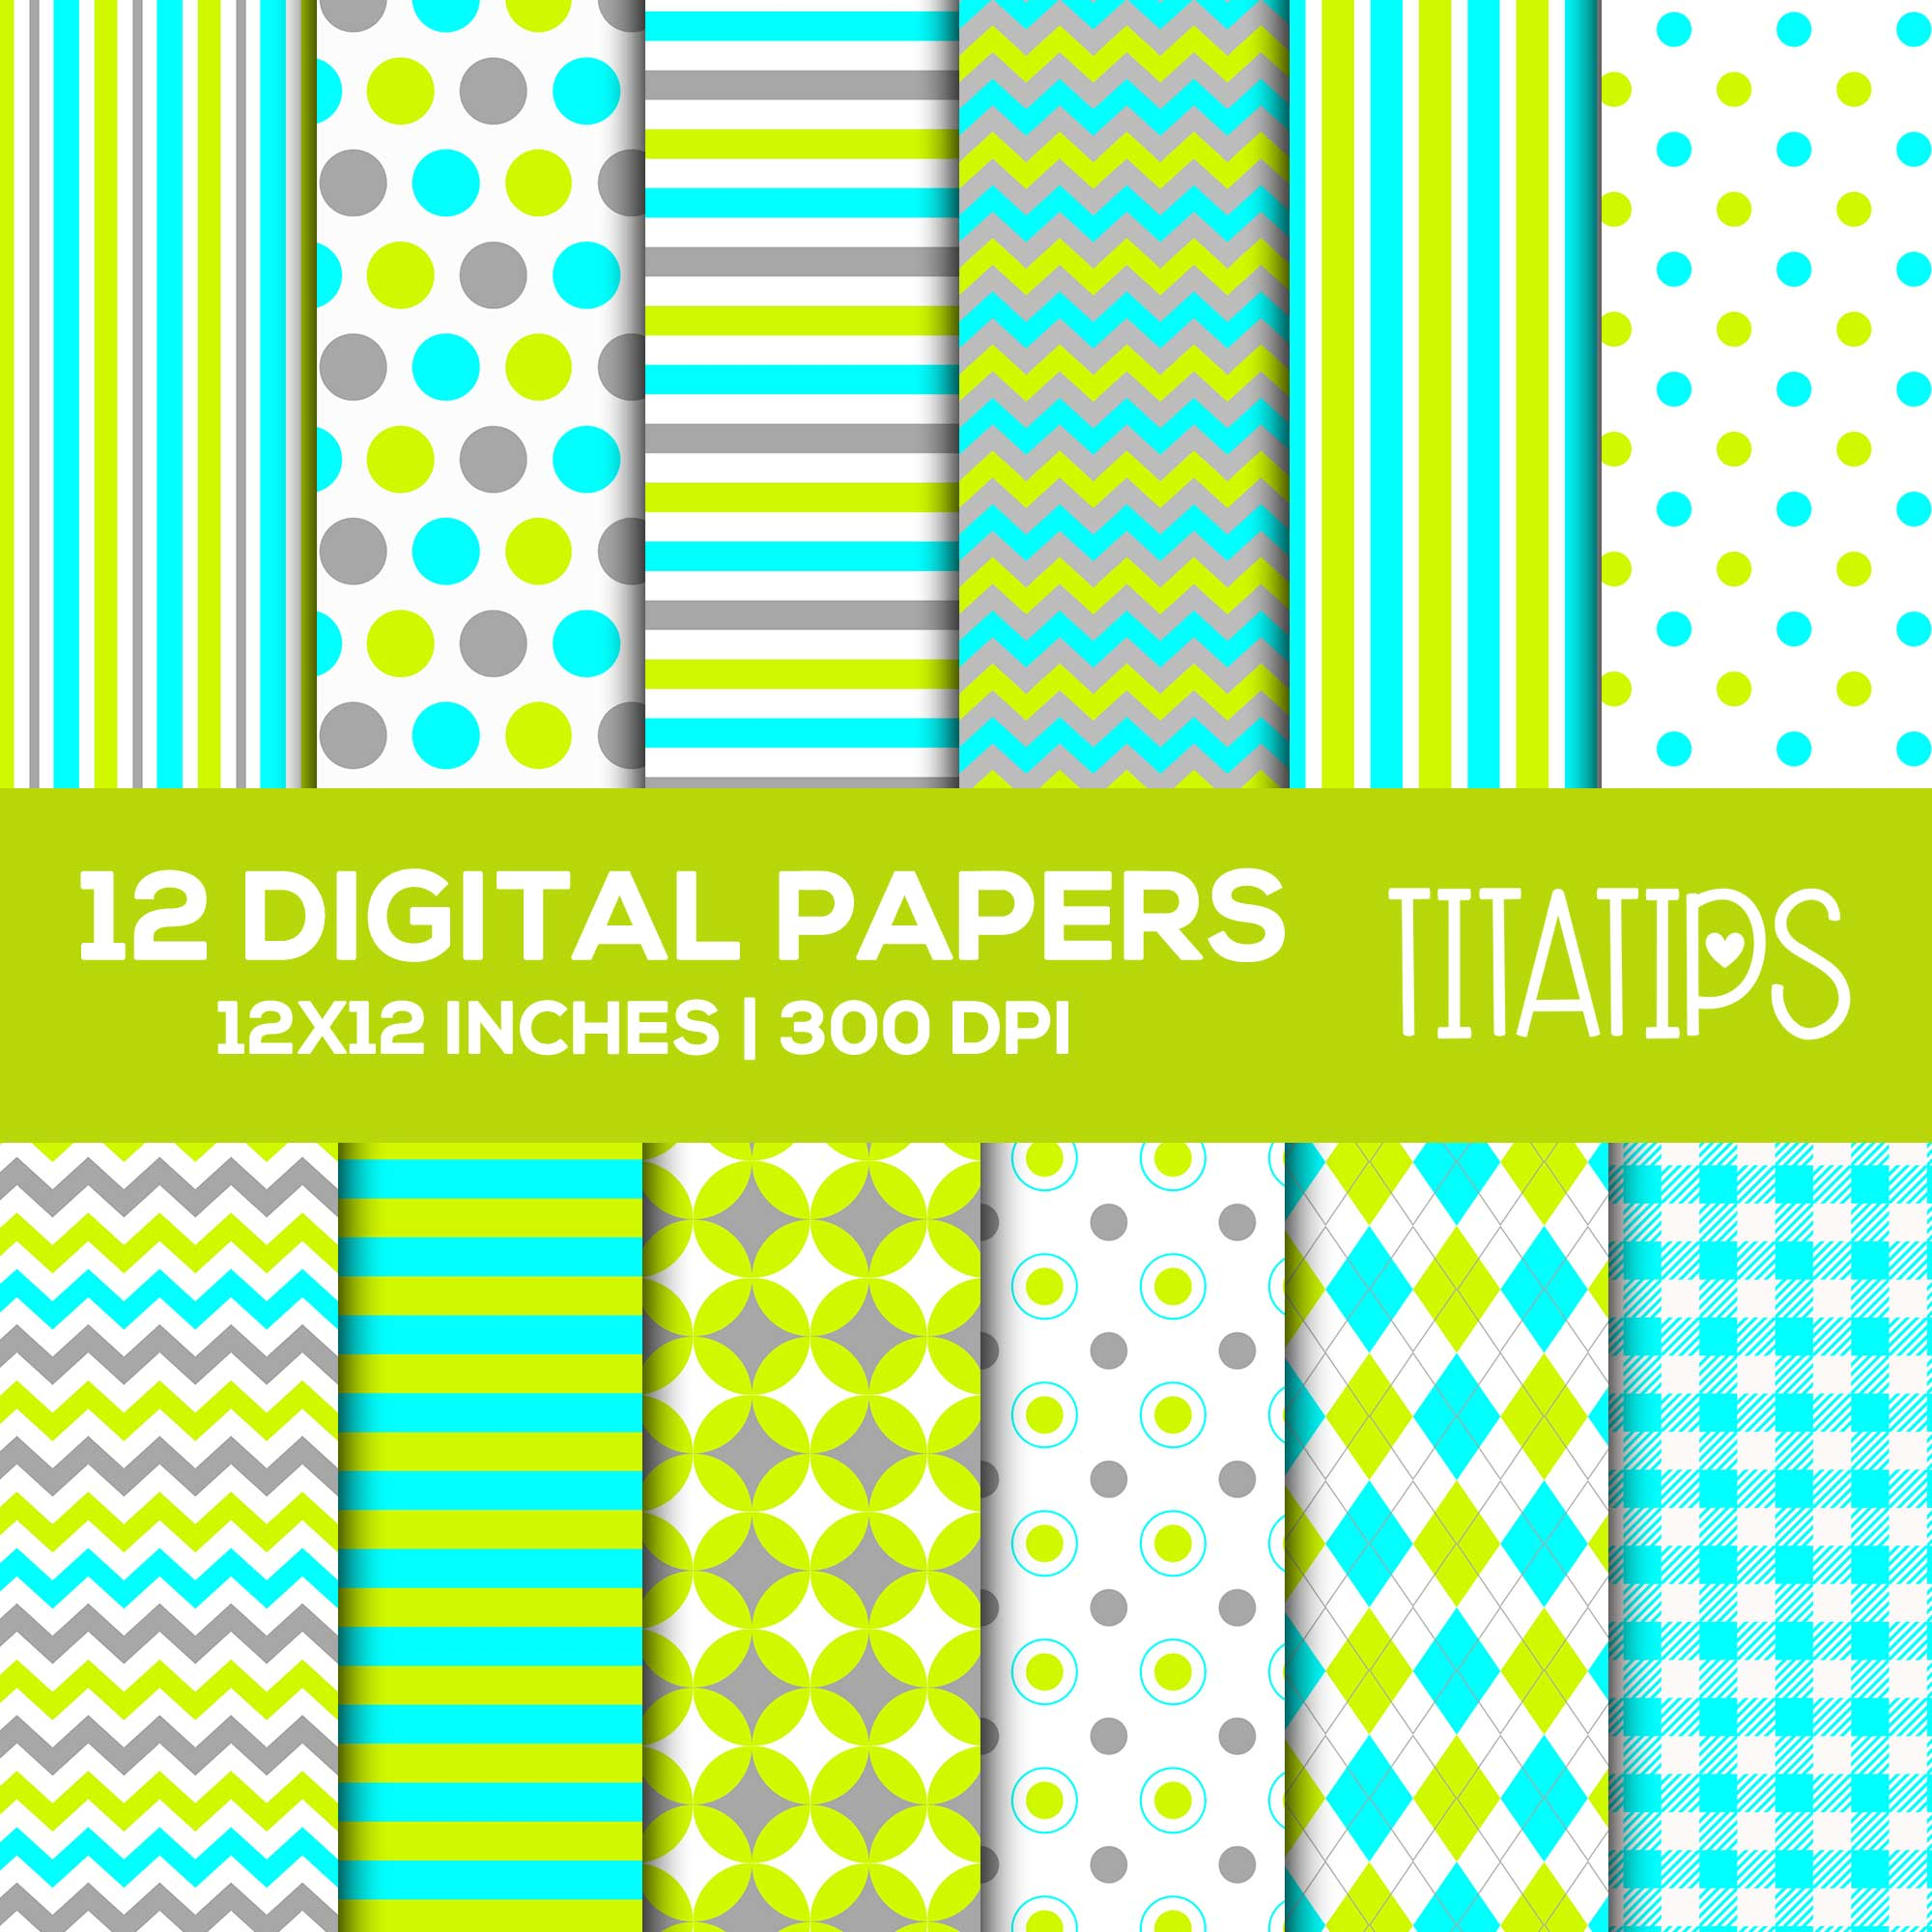 Happy Father's Day Digital Paper Set, Gentleman Pattern, Little Man Scrapbooking, Commercial Use [INSTANT DOWNLOAD] - TitaTipsPrintables